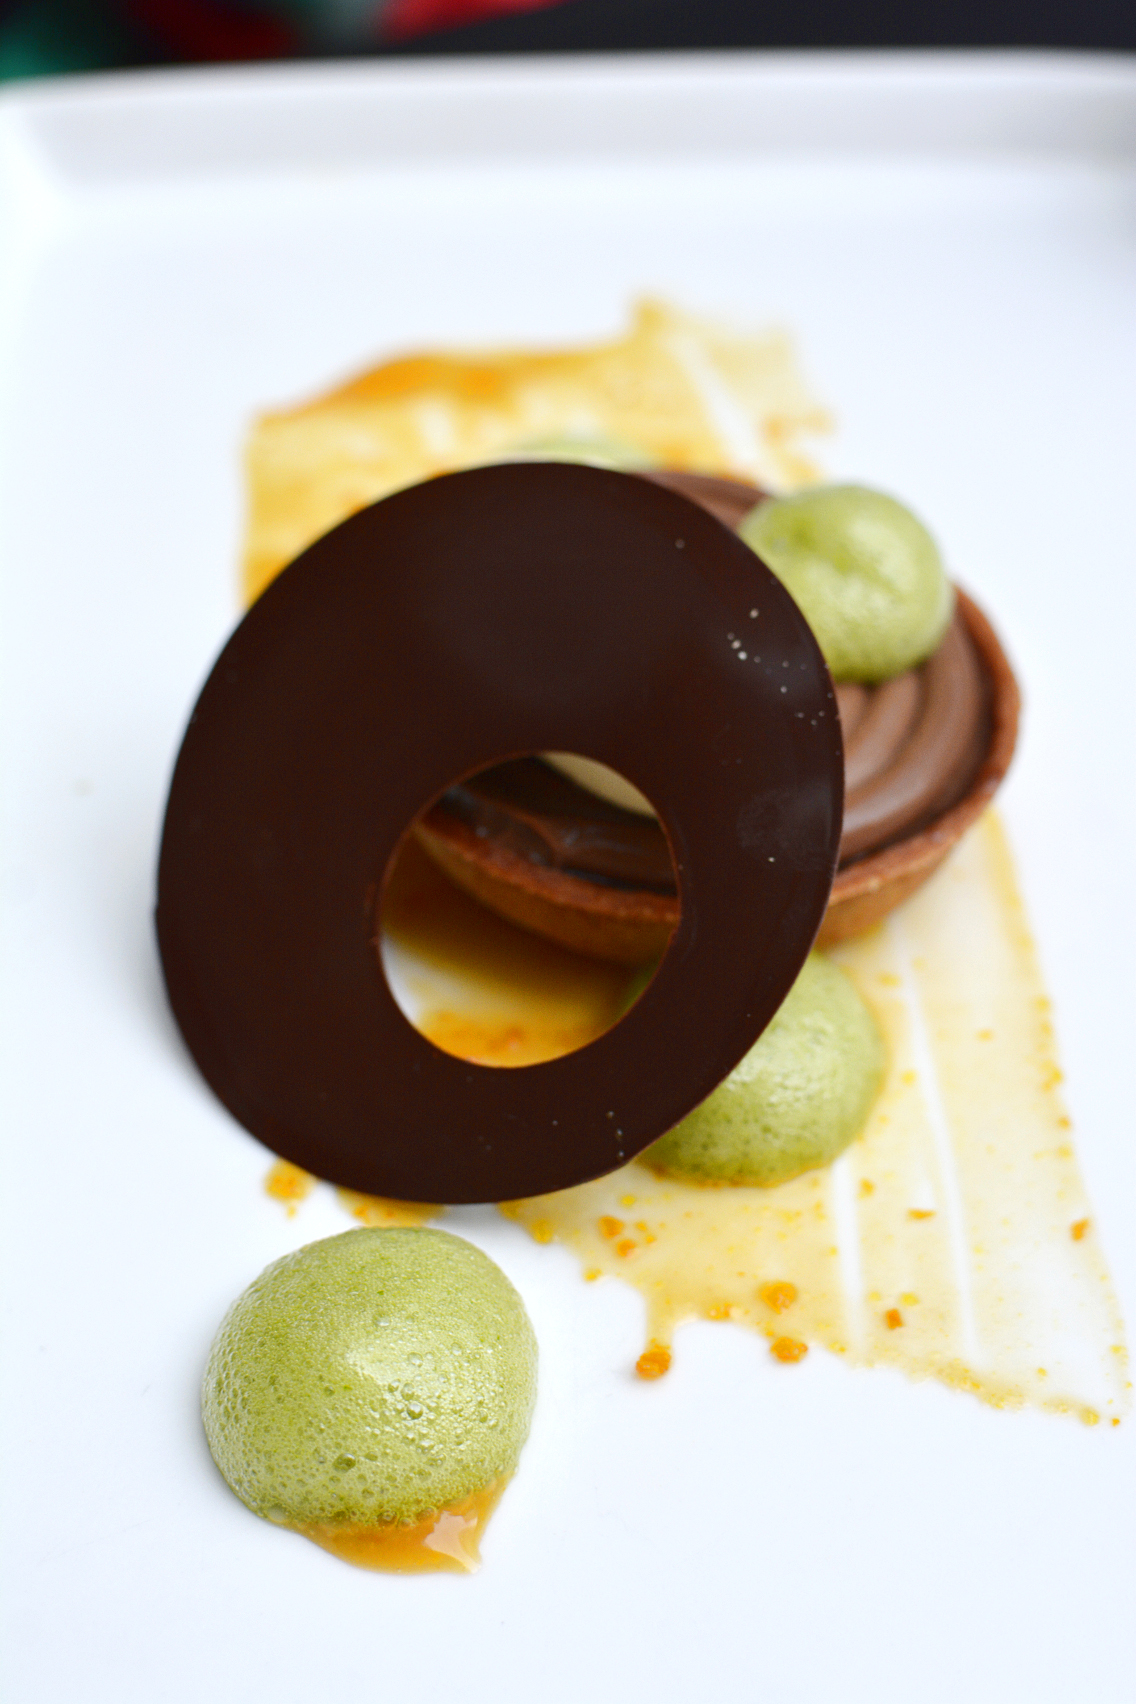 Sofitel Chicago Chestnut Provisions Chocolate Tart